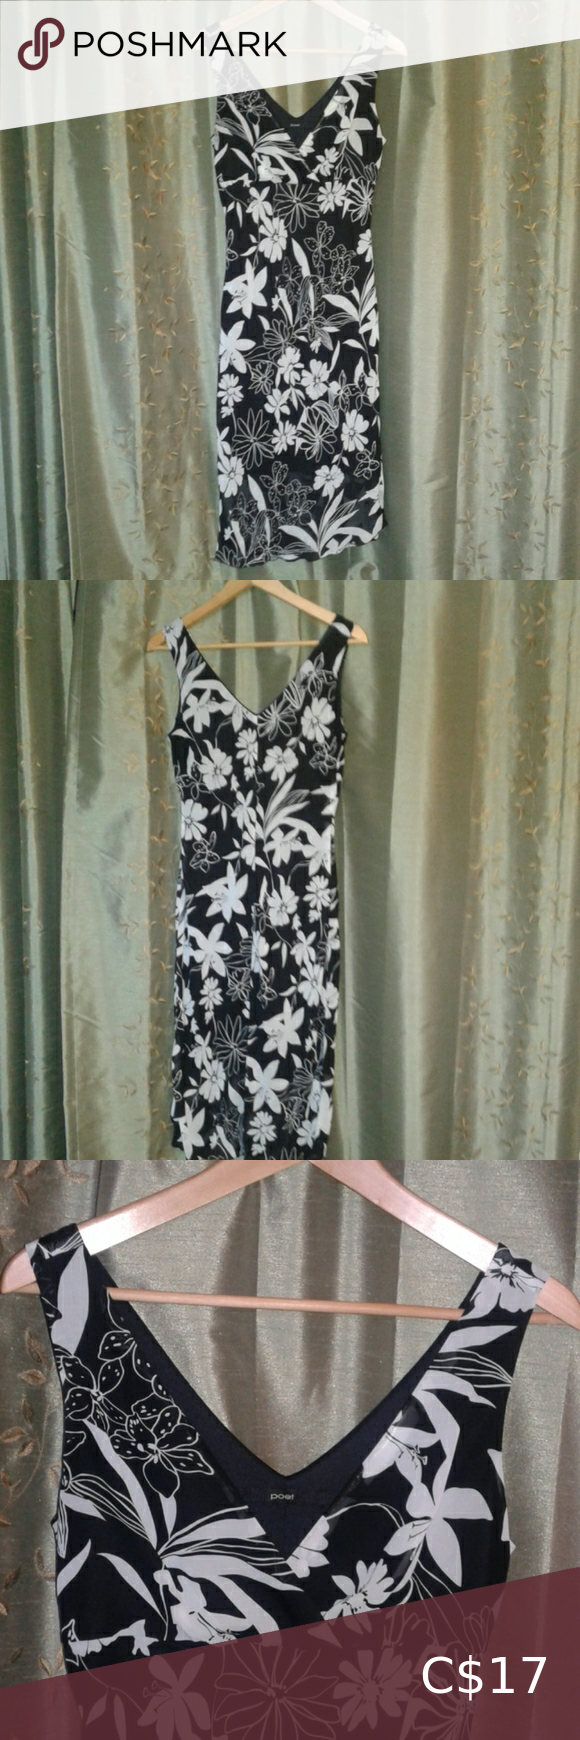 Poet Black And White Dress In 2020 With Images Fashion Clothes Design Colorful Dresses [ 1740 x 580 Pixel ]